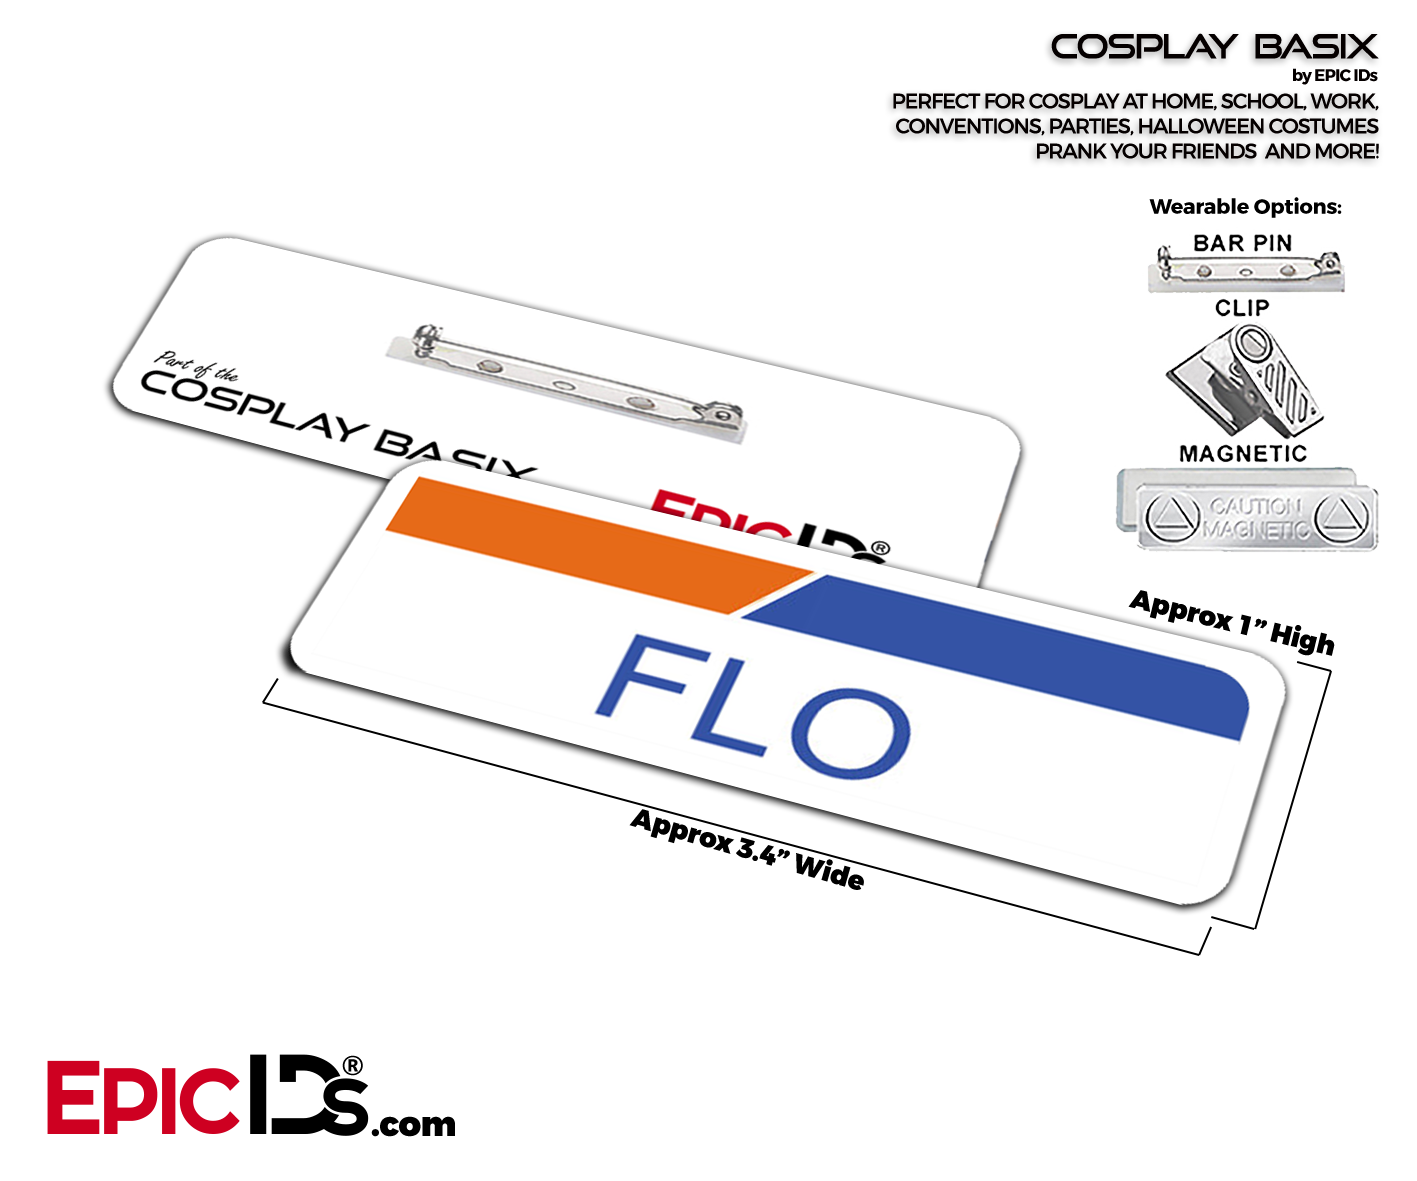 Flo From Progressive Insurance Cosplay ID Name Tag (With